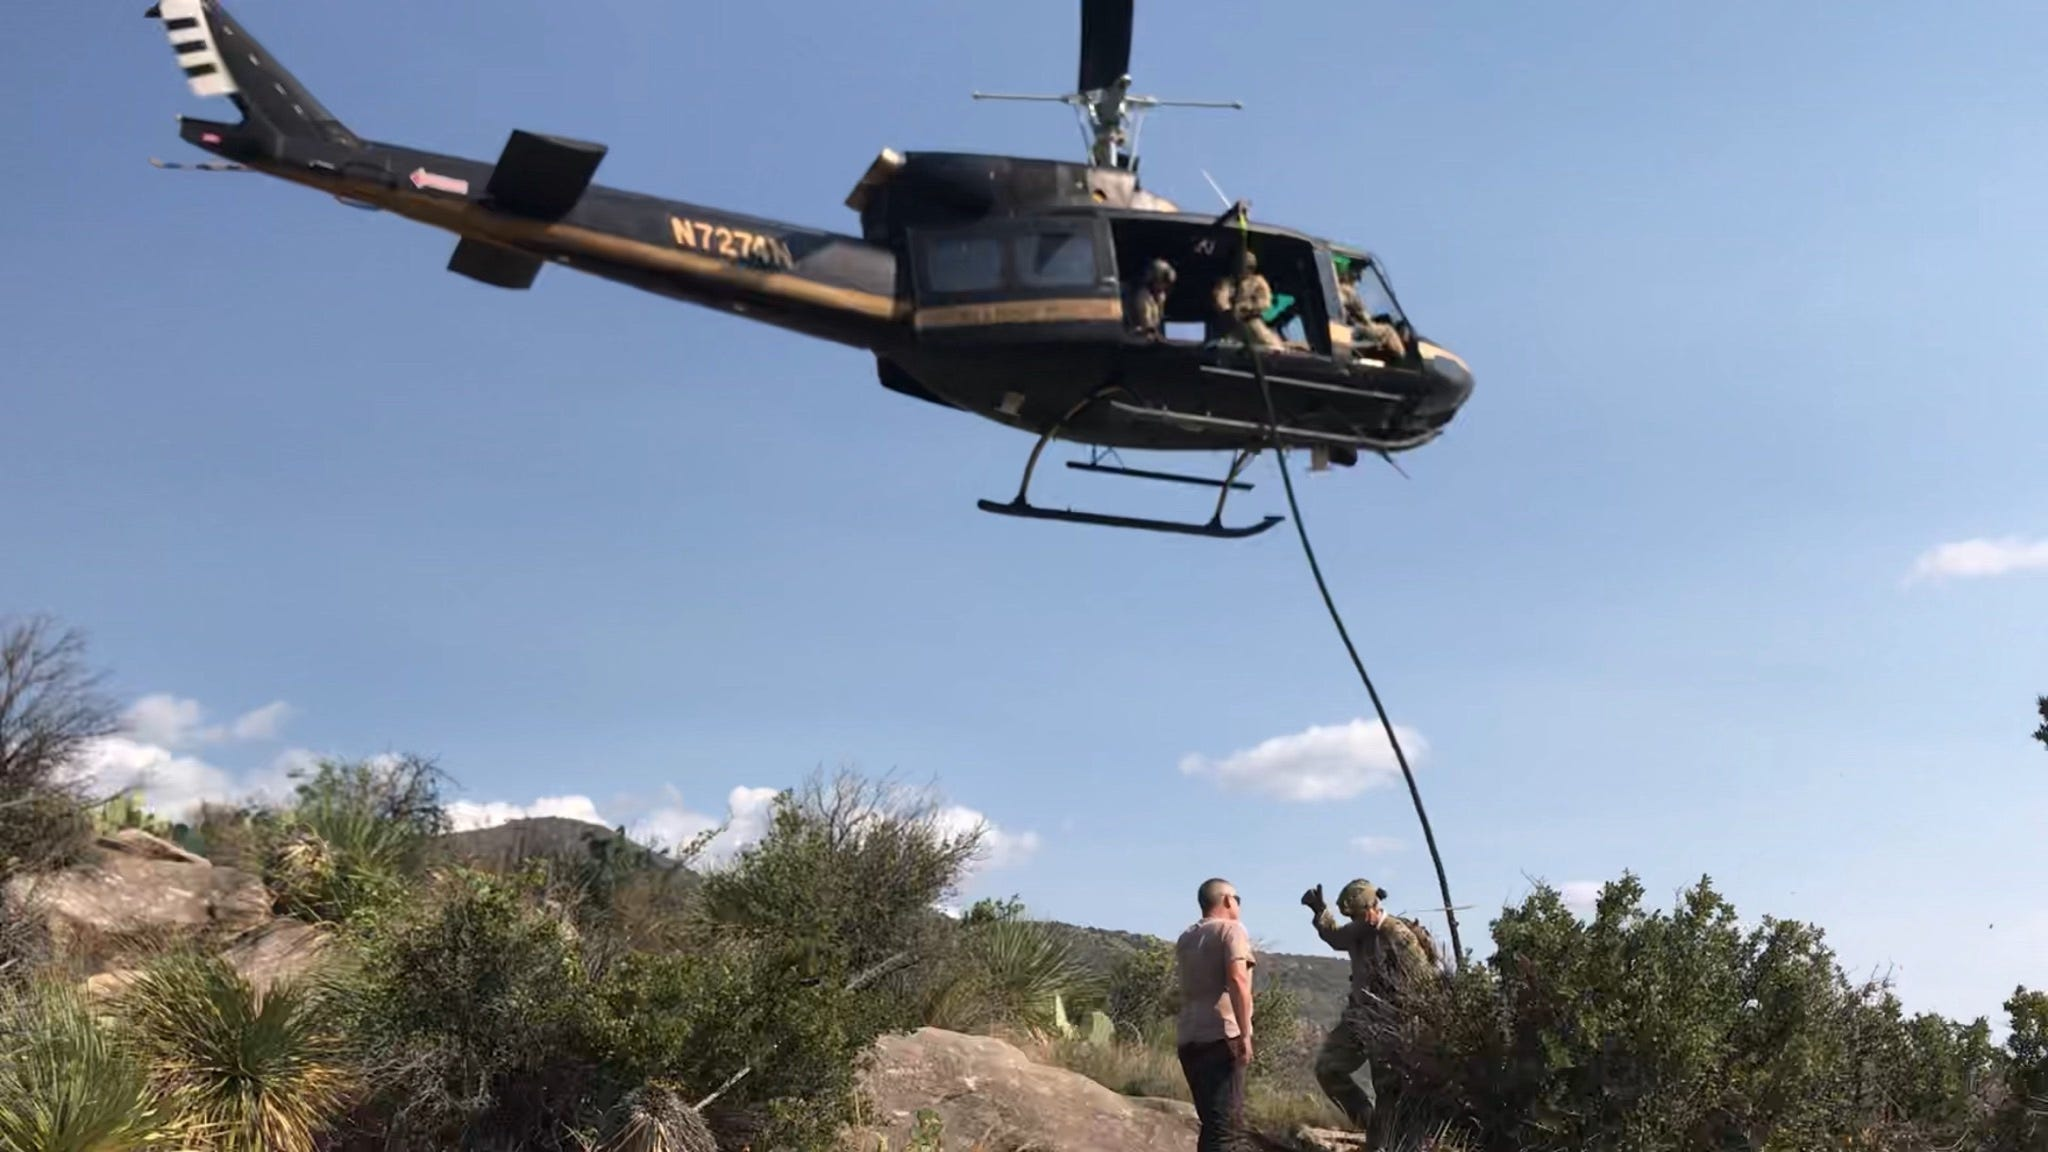 Injured El Paso hiker rescued from Franklin Mountains Thursday | El Paso Times